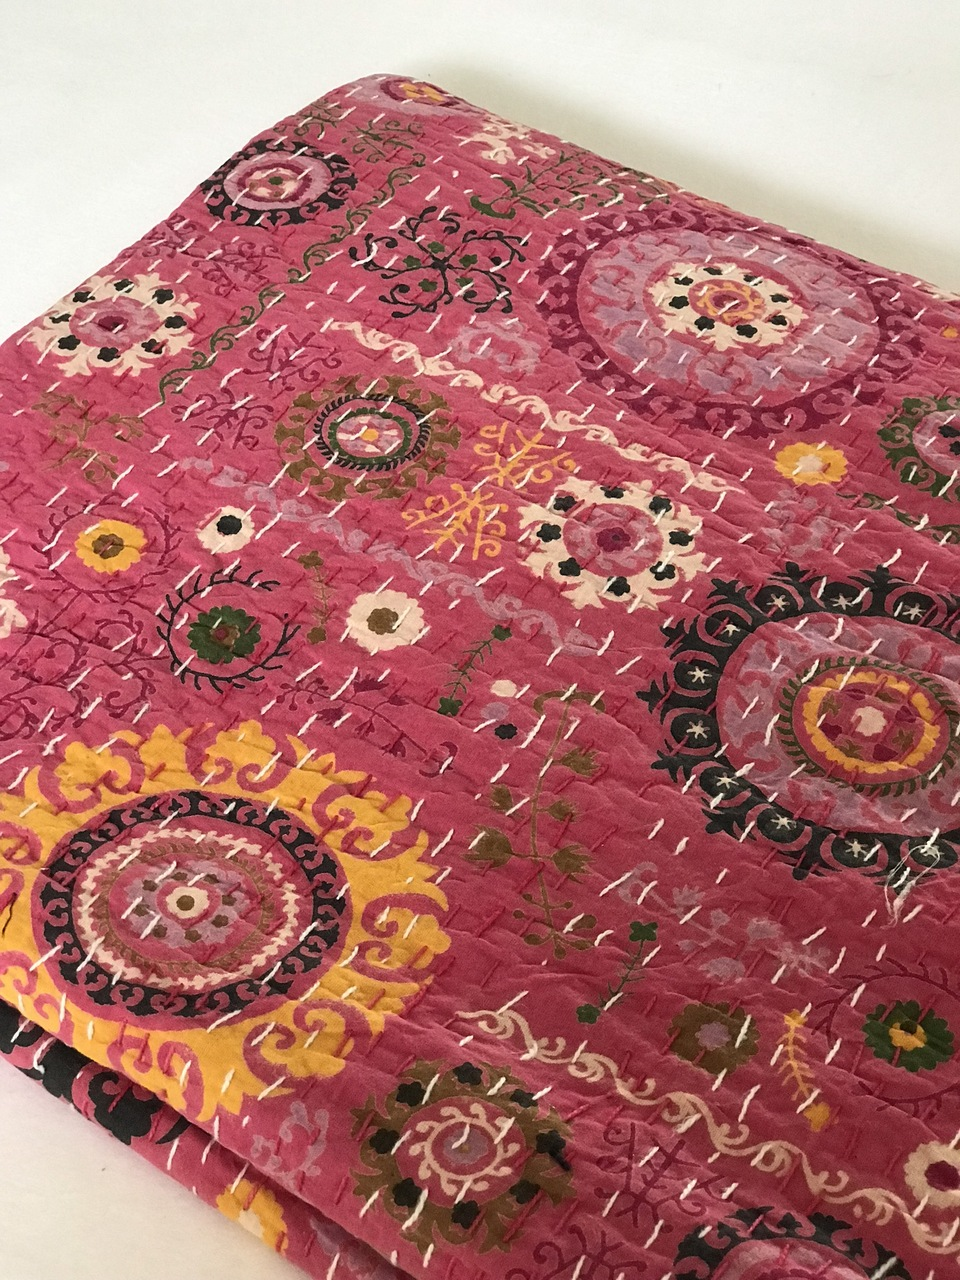 Rose  Suzani  Kantha Quilt by Peacocks and Paisley, a Quilt Covers for sale on Style Sourcebook